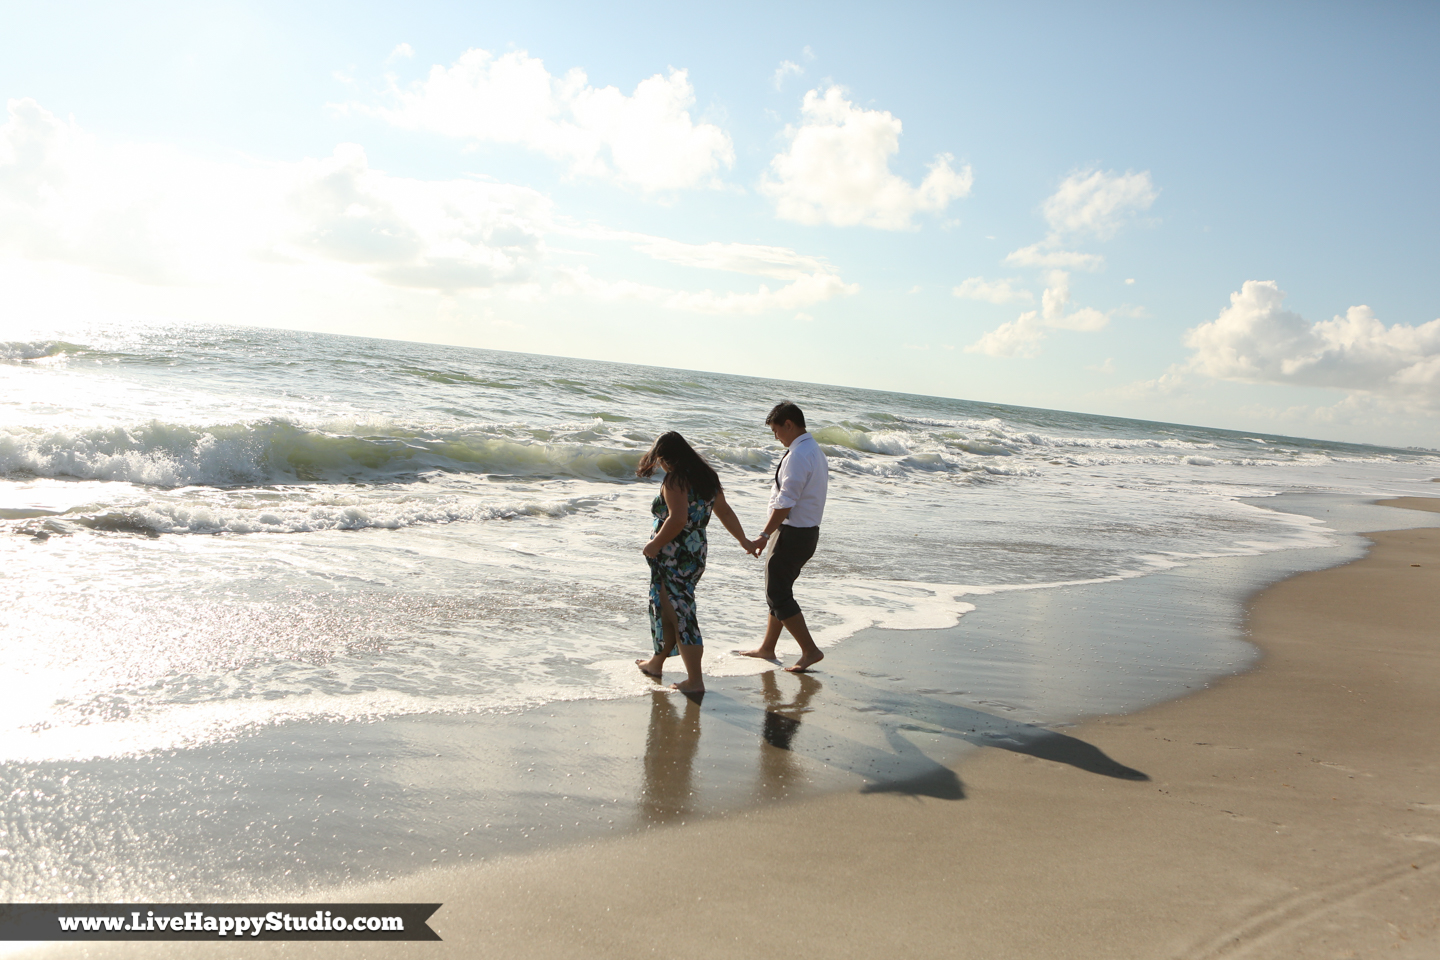 www.livehappystudio.com-engagement-wedding-photographer-orlando-fun-candid-portrait-cocoa-beach-9.jpg